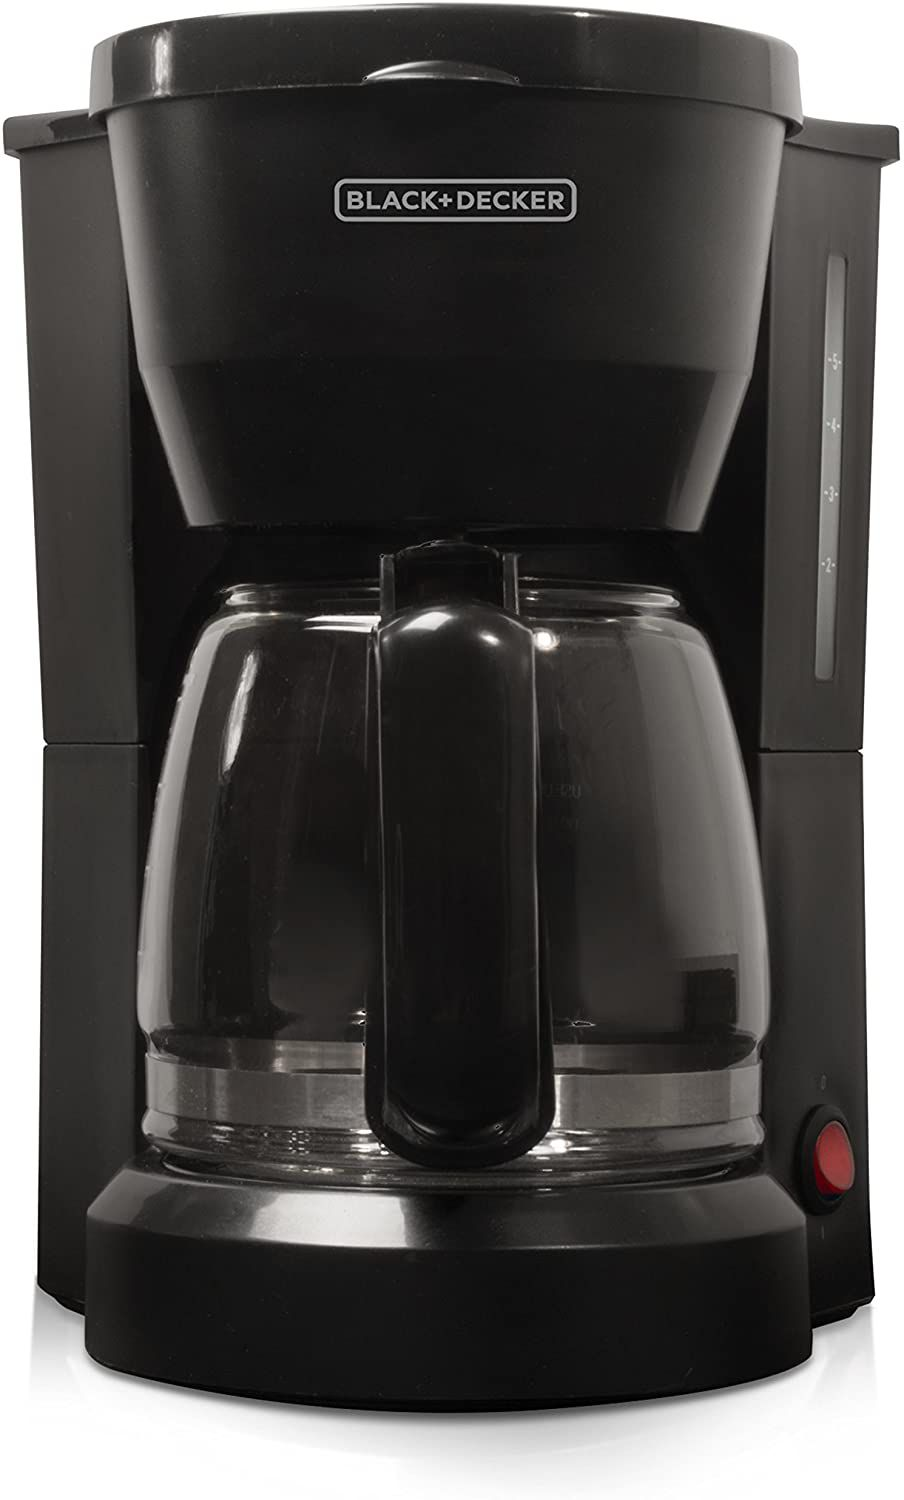 black-and-decker-5-cup-coffee-maker